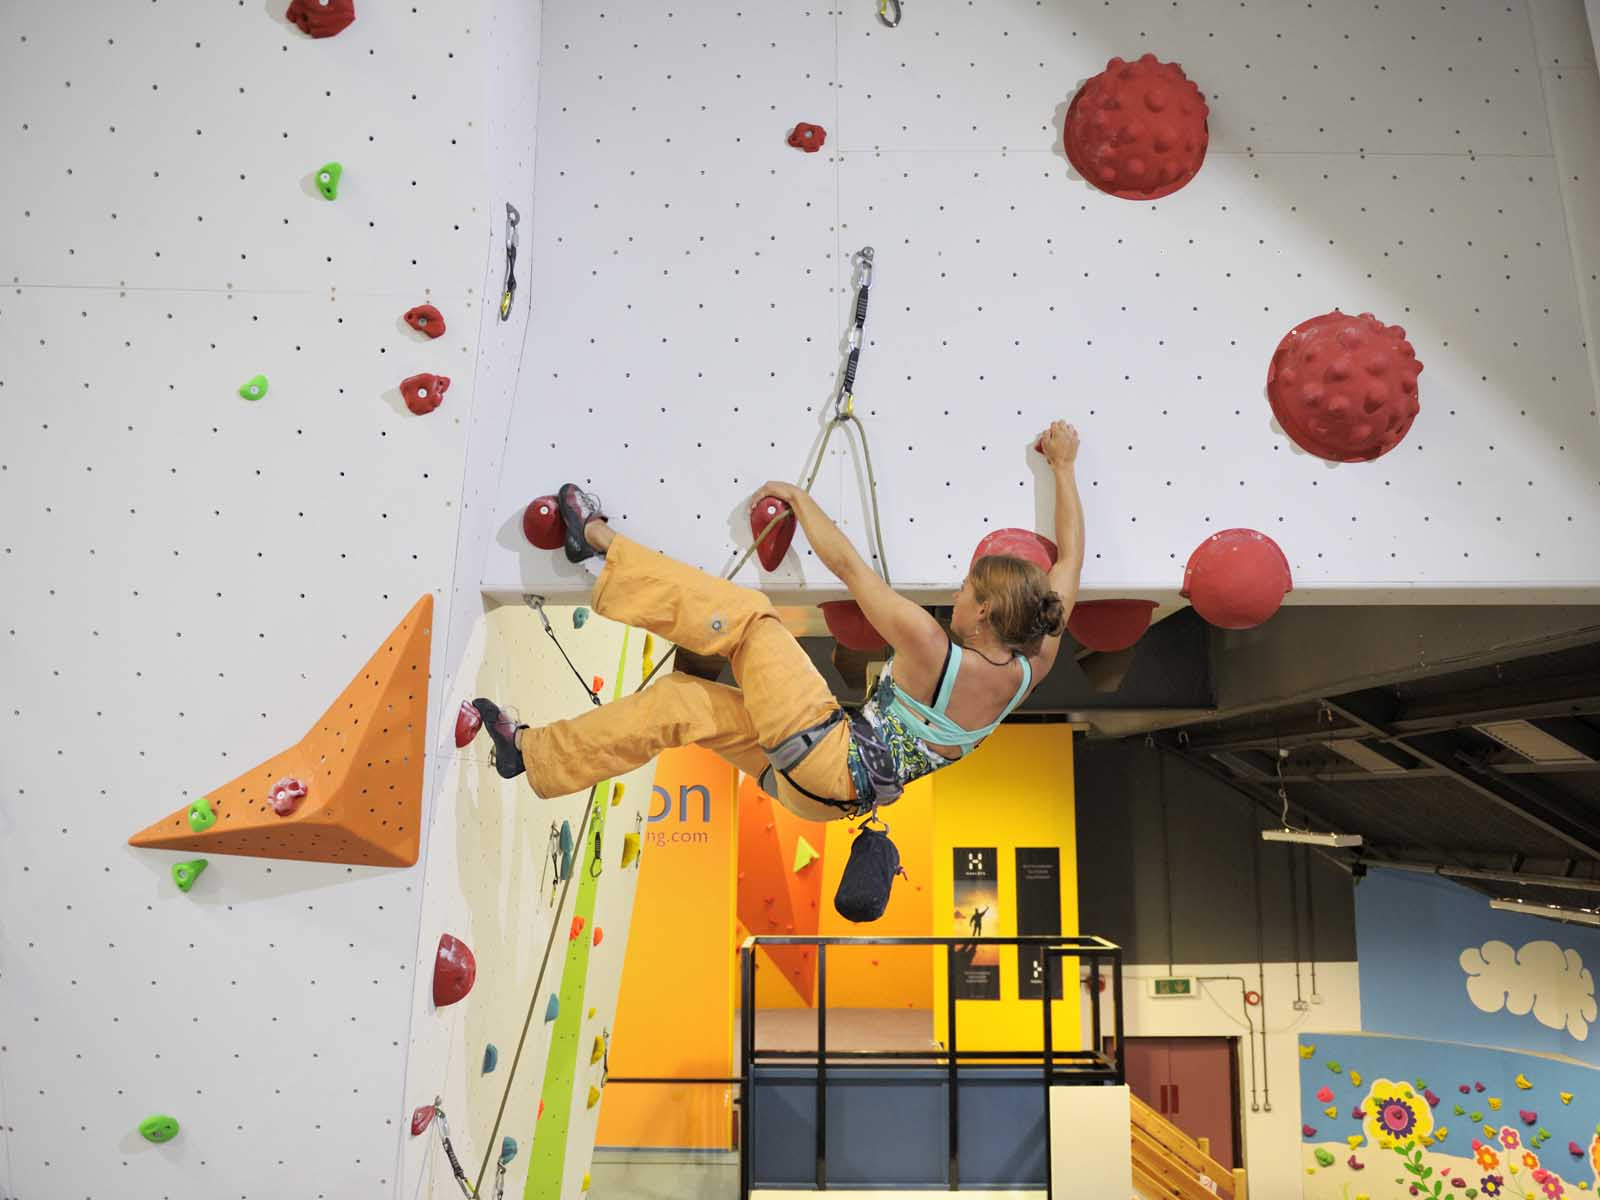 Climbing holds for indoor climbing walls